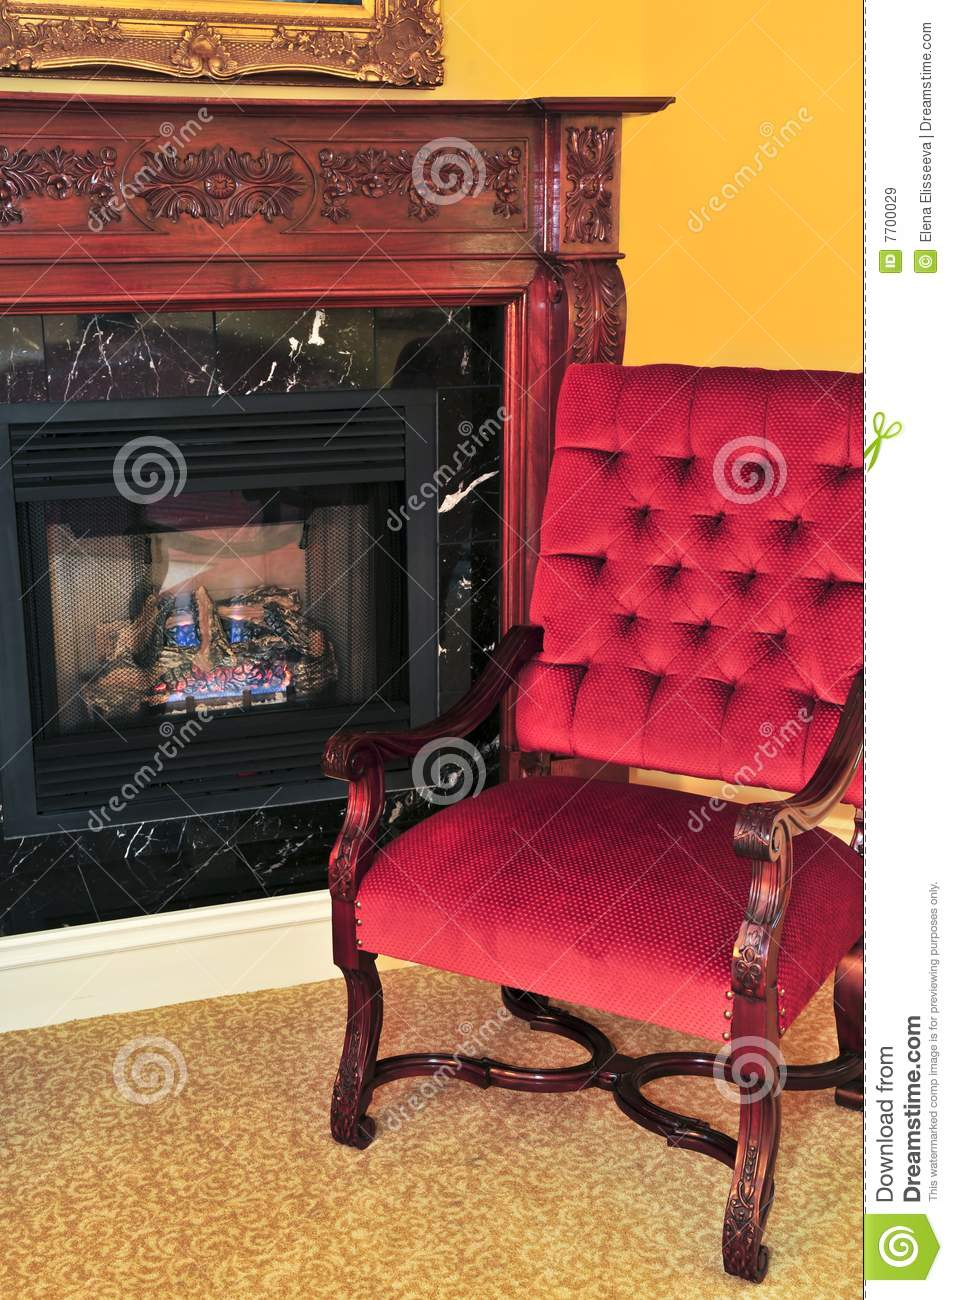 1800s Country Homes: Fireplace And Red Chair Stock Image. Image Of Armchair